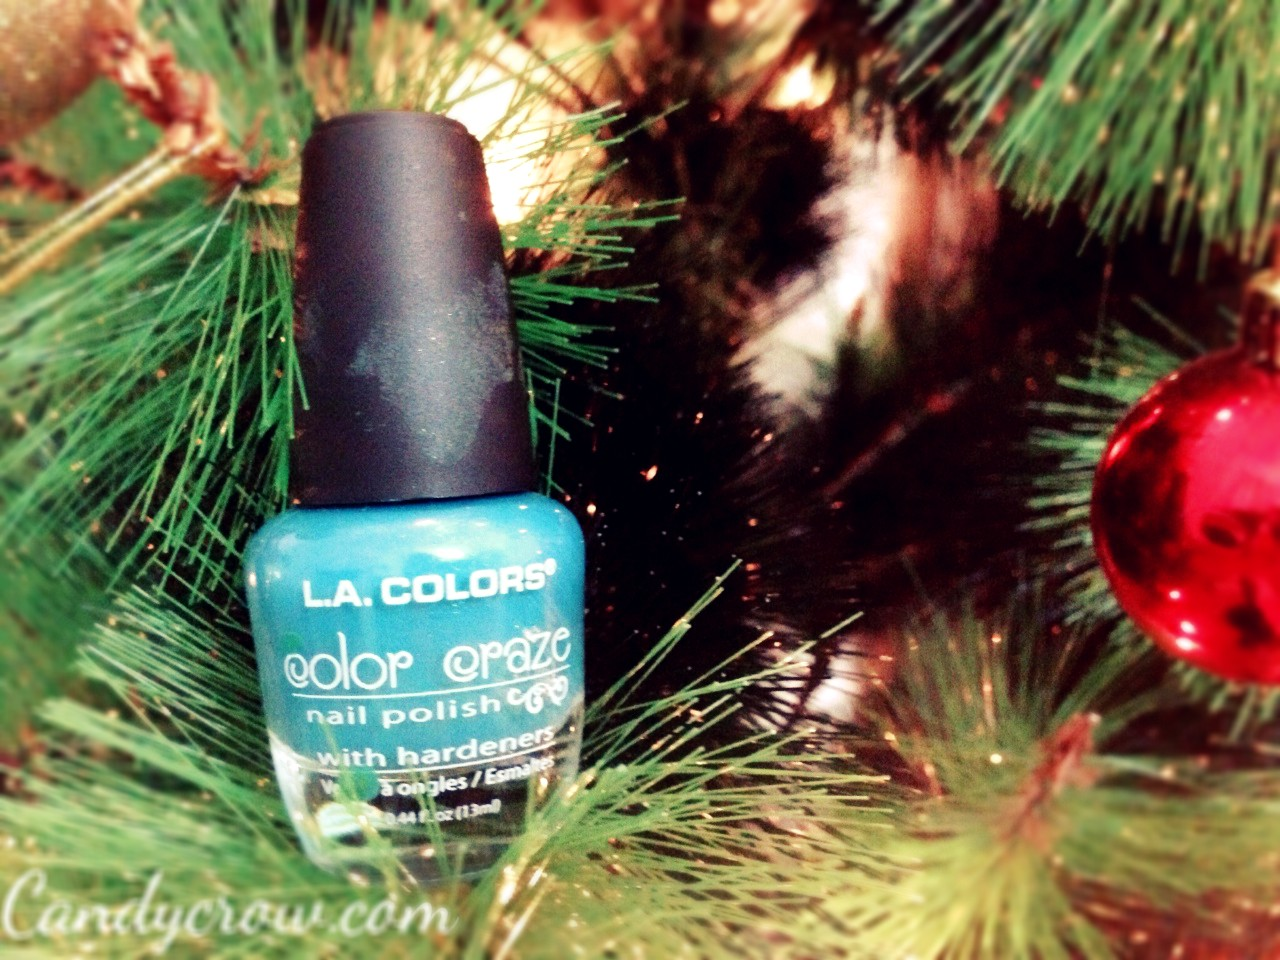 L.A colors - Color craze Nail polish Shock and Atomic Review